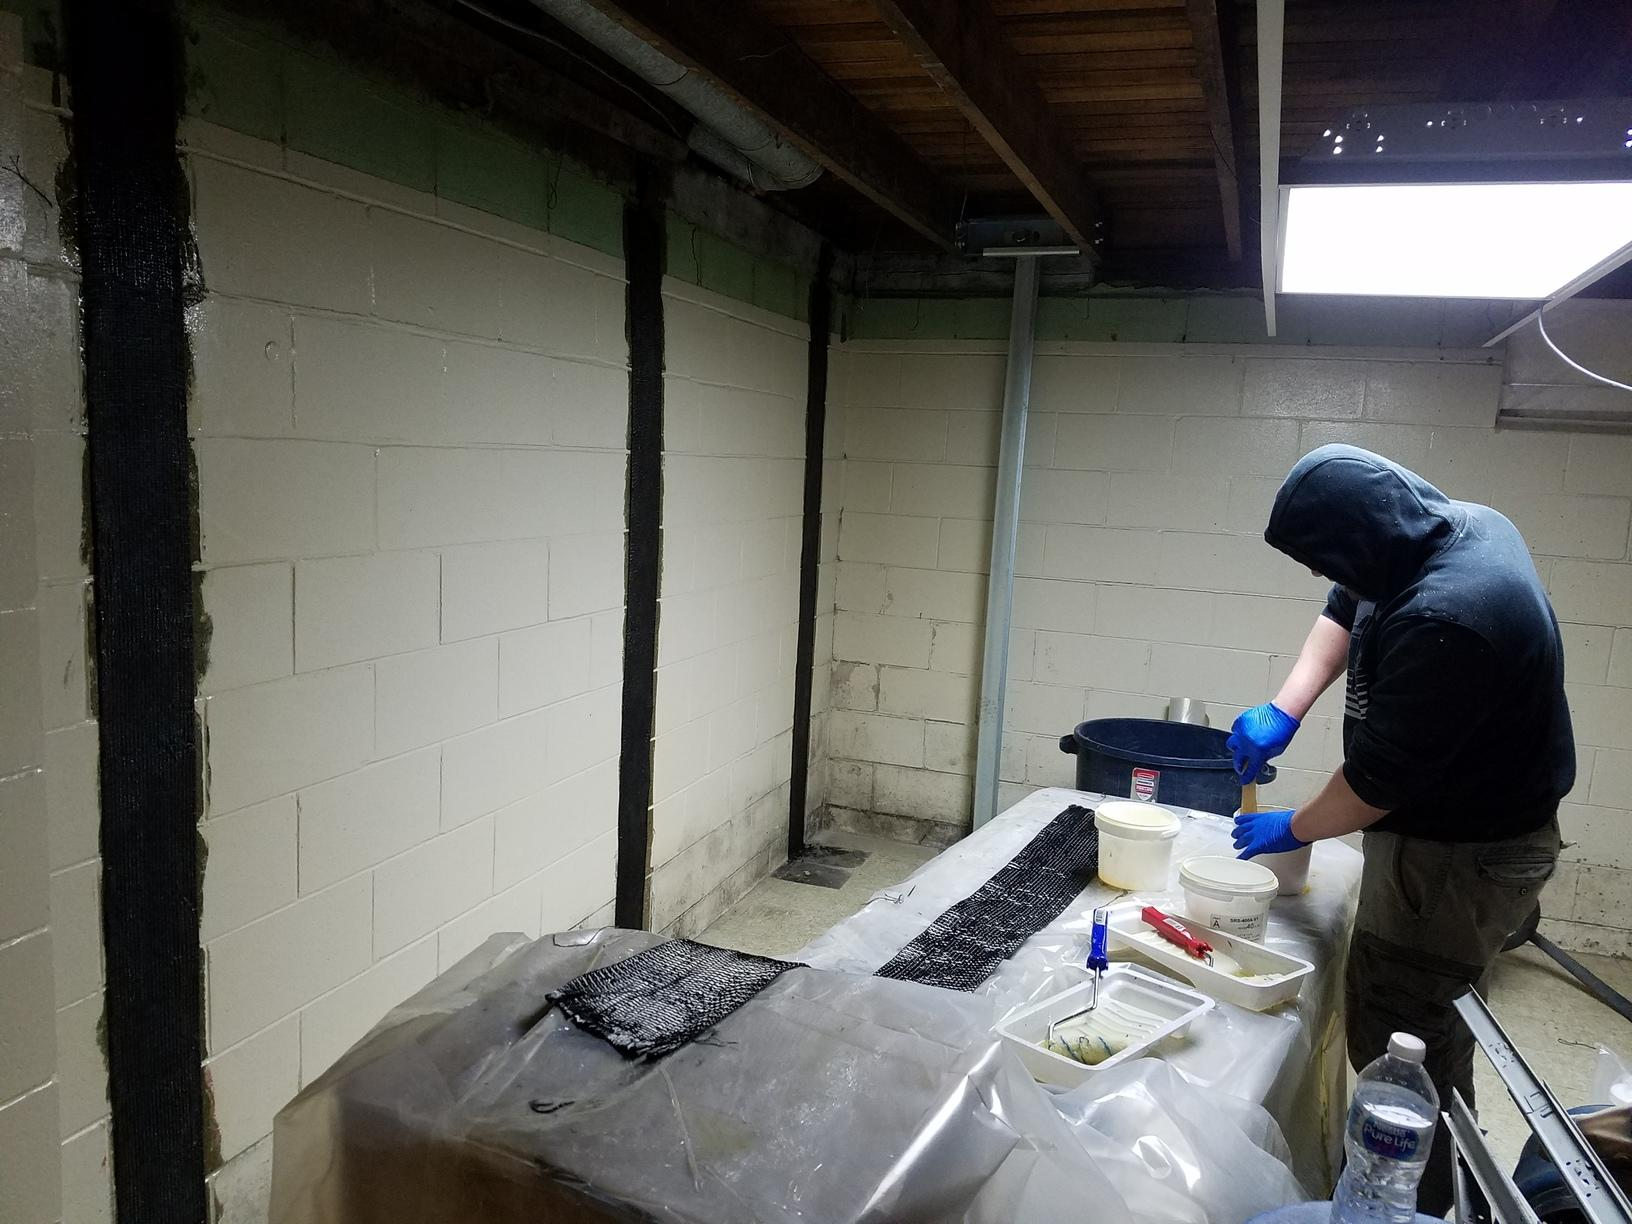 CarbonArmor and PowerBraces installed in a basement to help stabilize the walls.